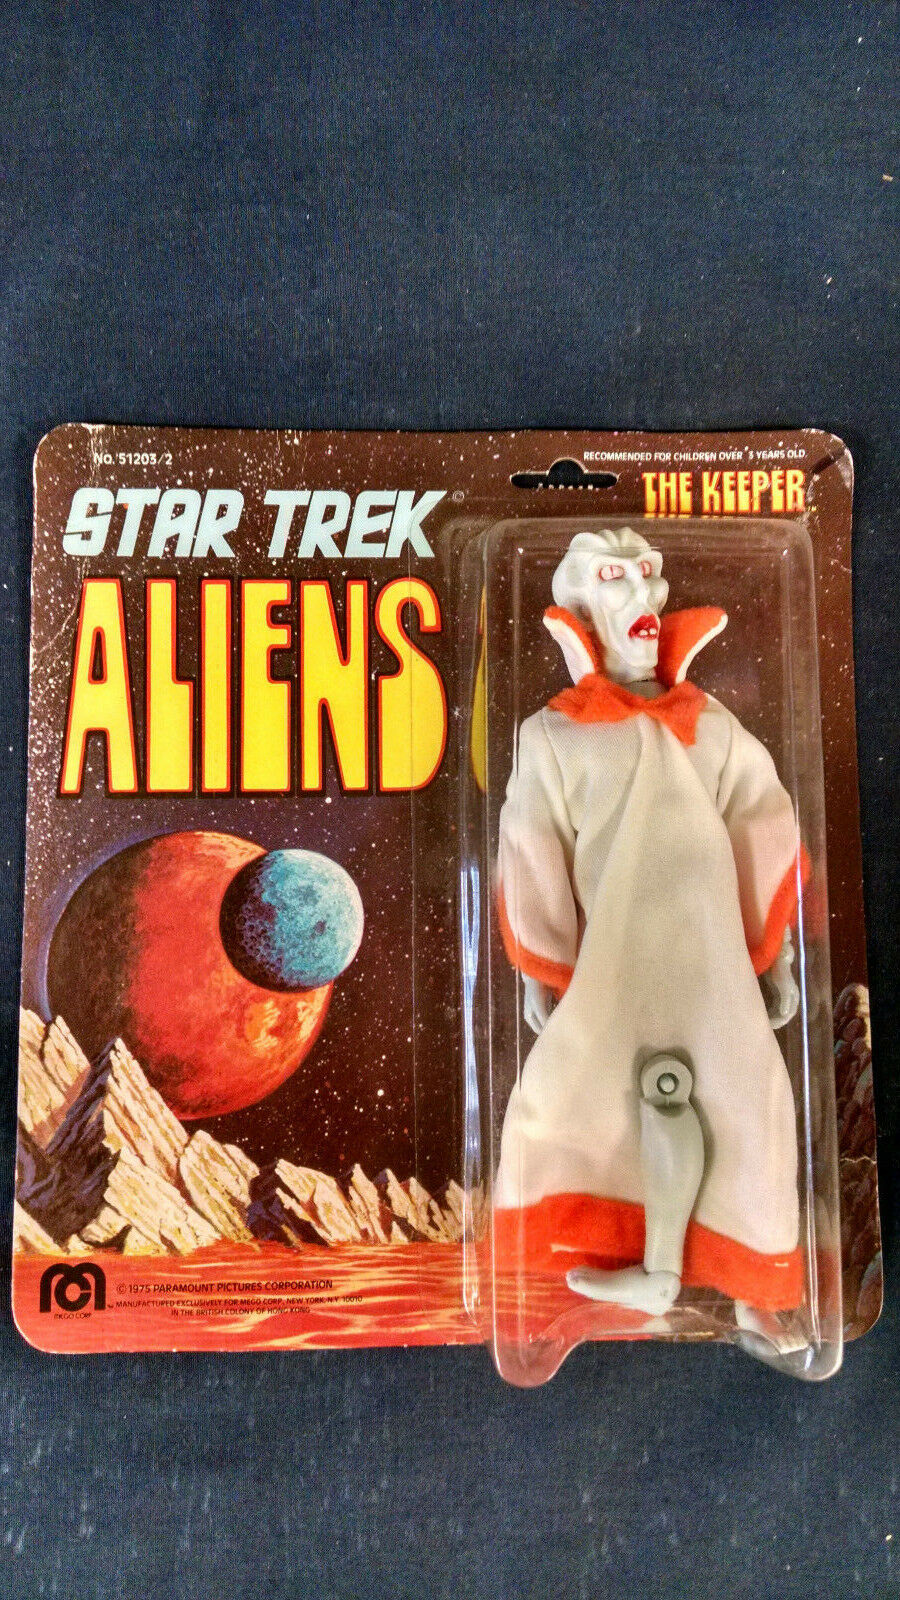 1975 MEGO Star Trek ALIENS the Keeper MOC carded action figure mint on card NOS